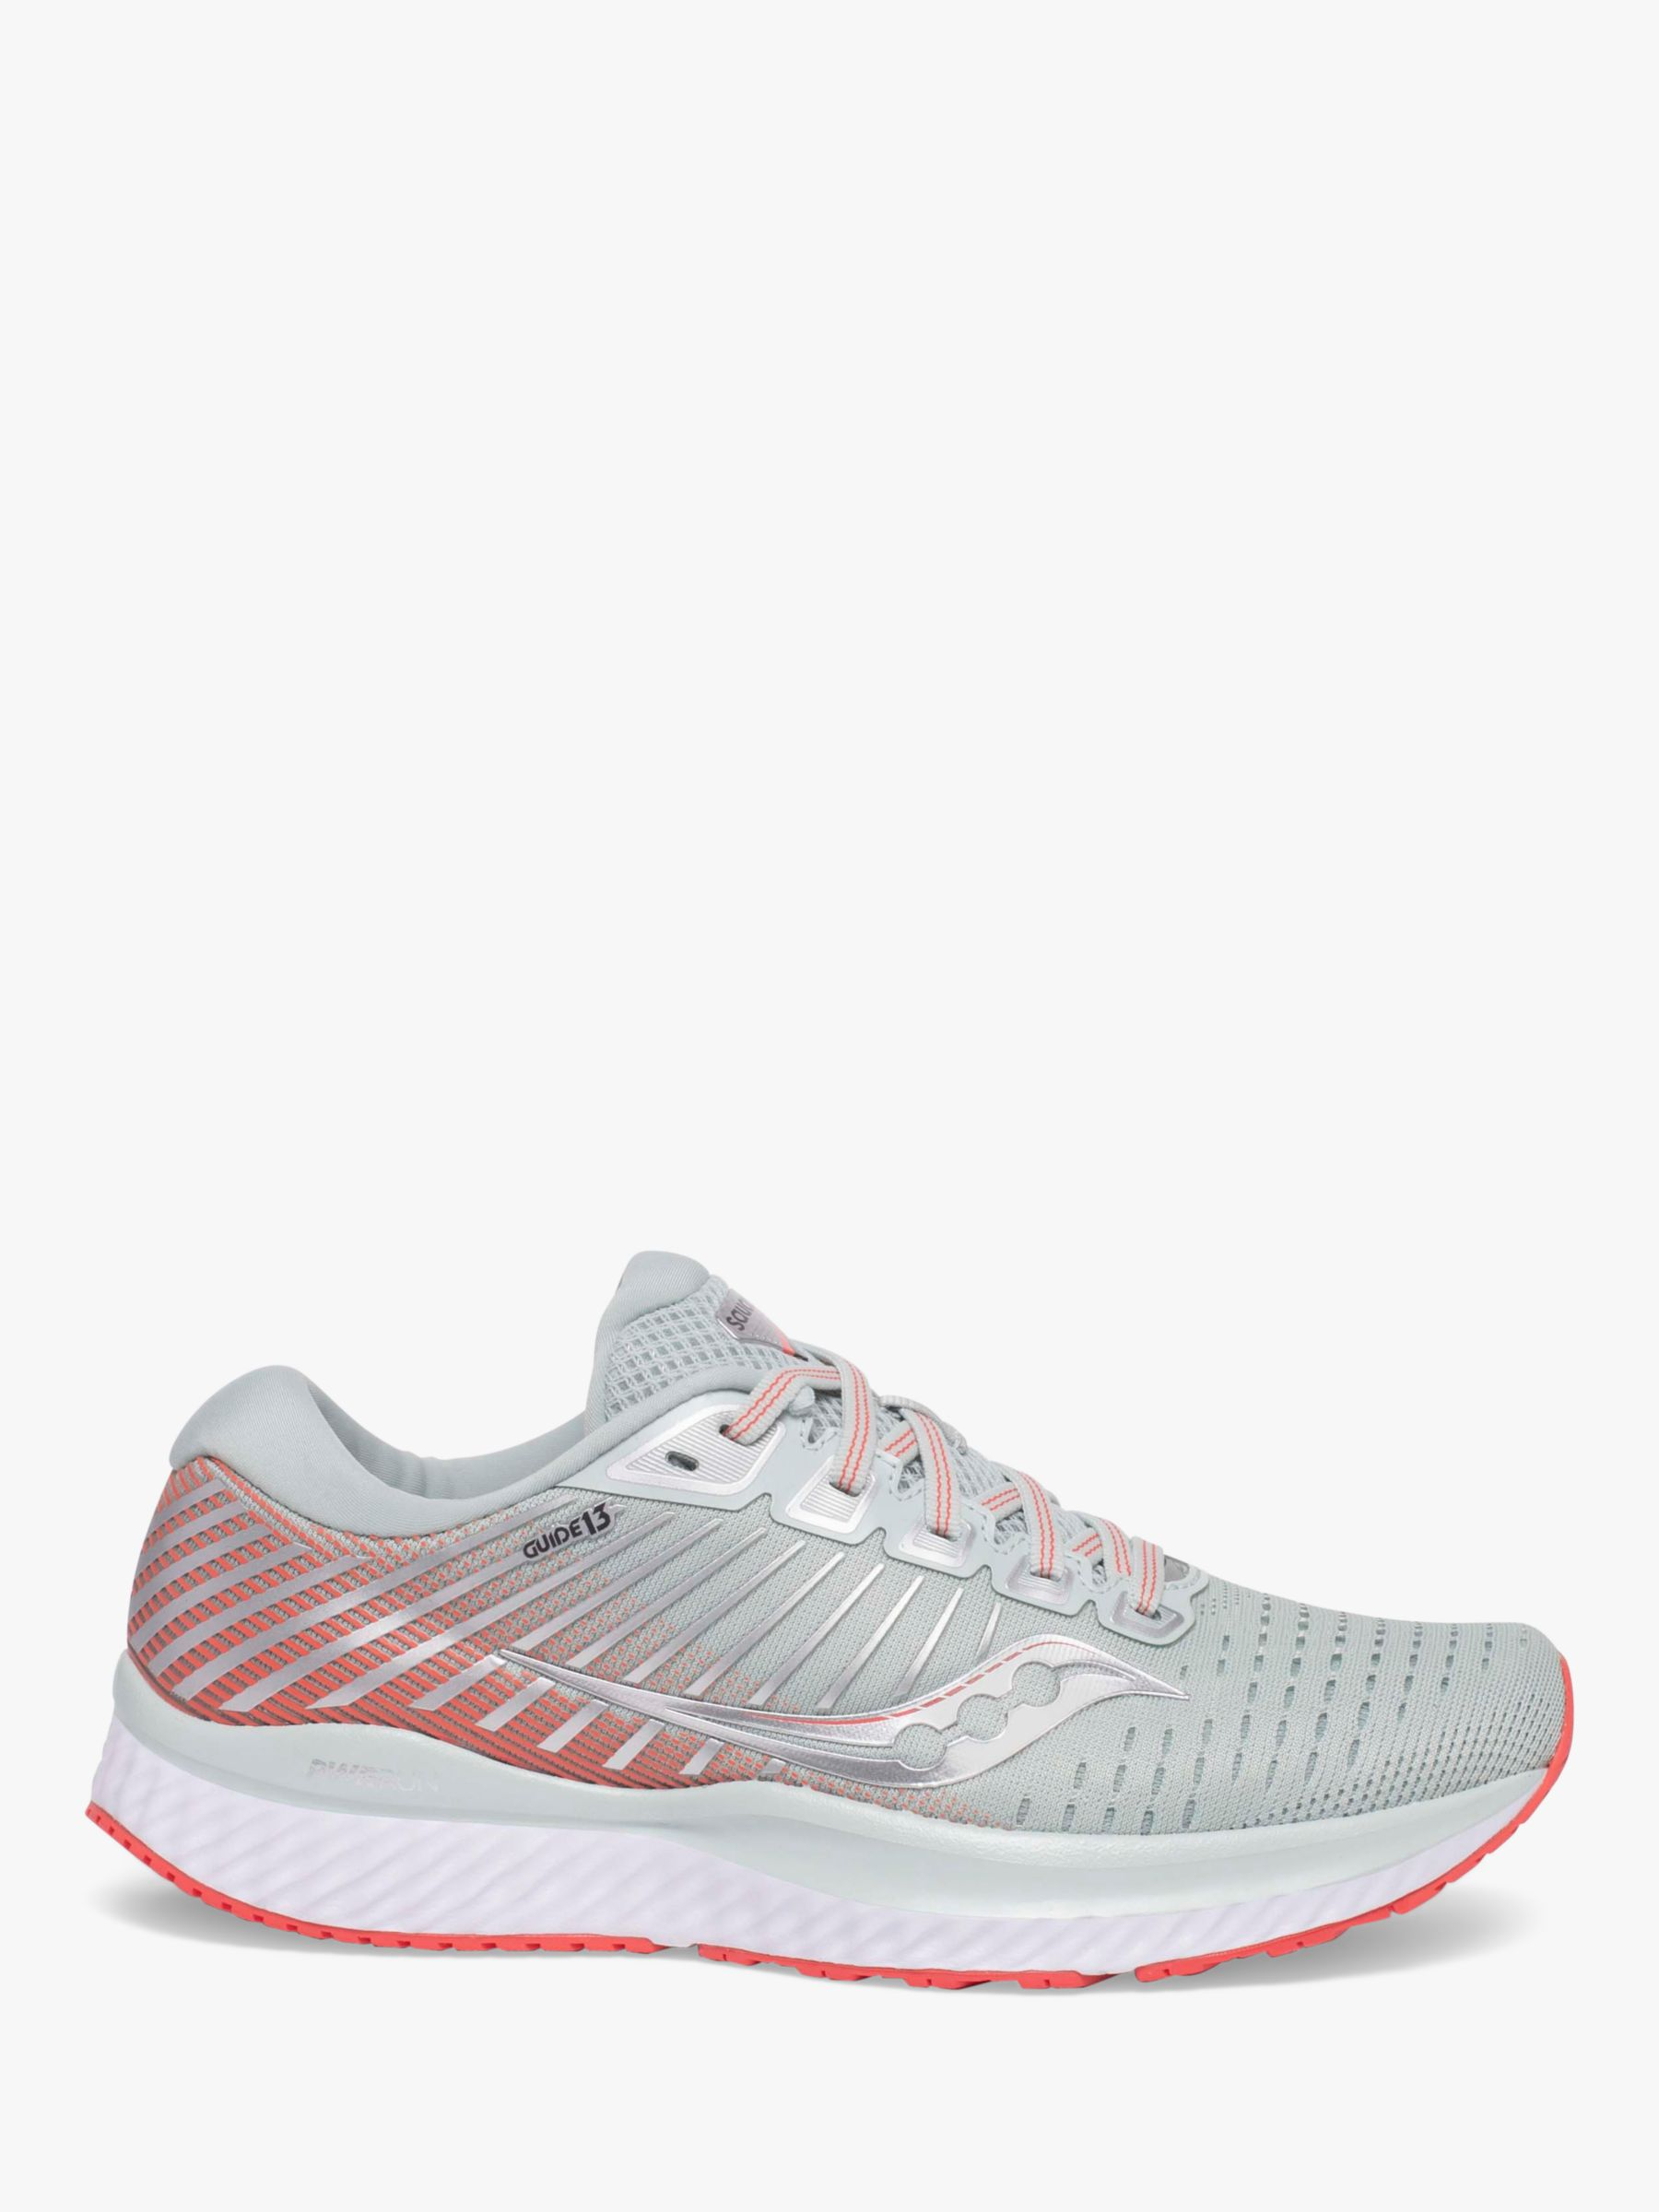 Saucony Saucony Guide 13 Women's Running Shoes, Sky Grey/Coral